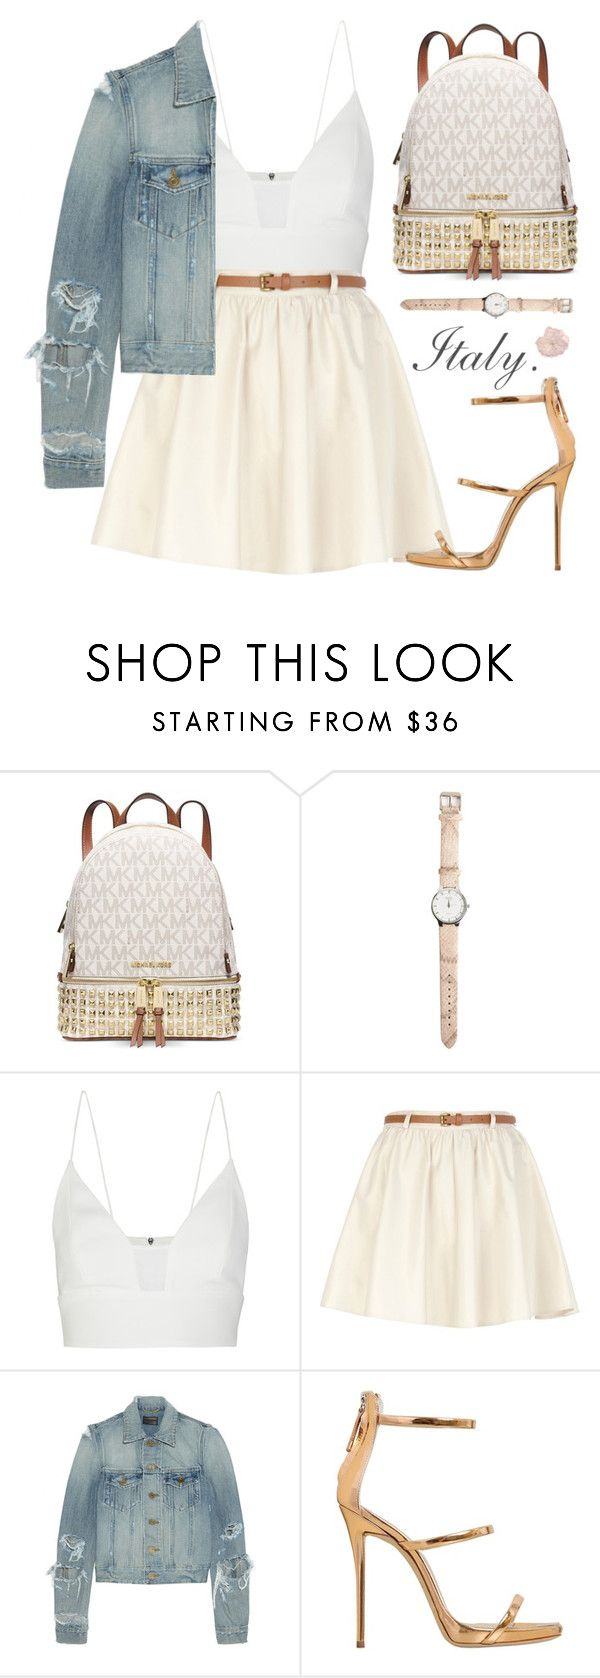 """""""♔Dream of Italy♛"""" by alexandra-provenzano ❤ liked on Polyvore featuring Michael Kors, Narciso Rodriguez, River Island, Yves Saint Laurent, Giuseppe Zanotti, women's clothing, women, female, woman and misses"""